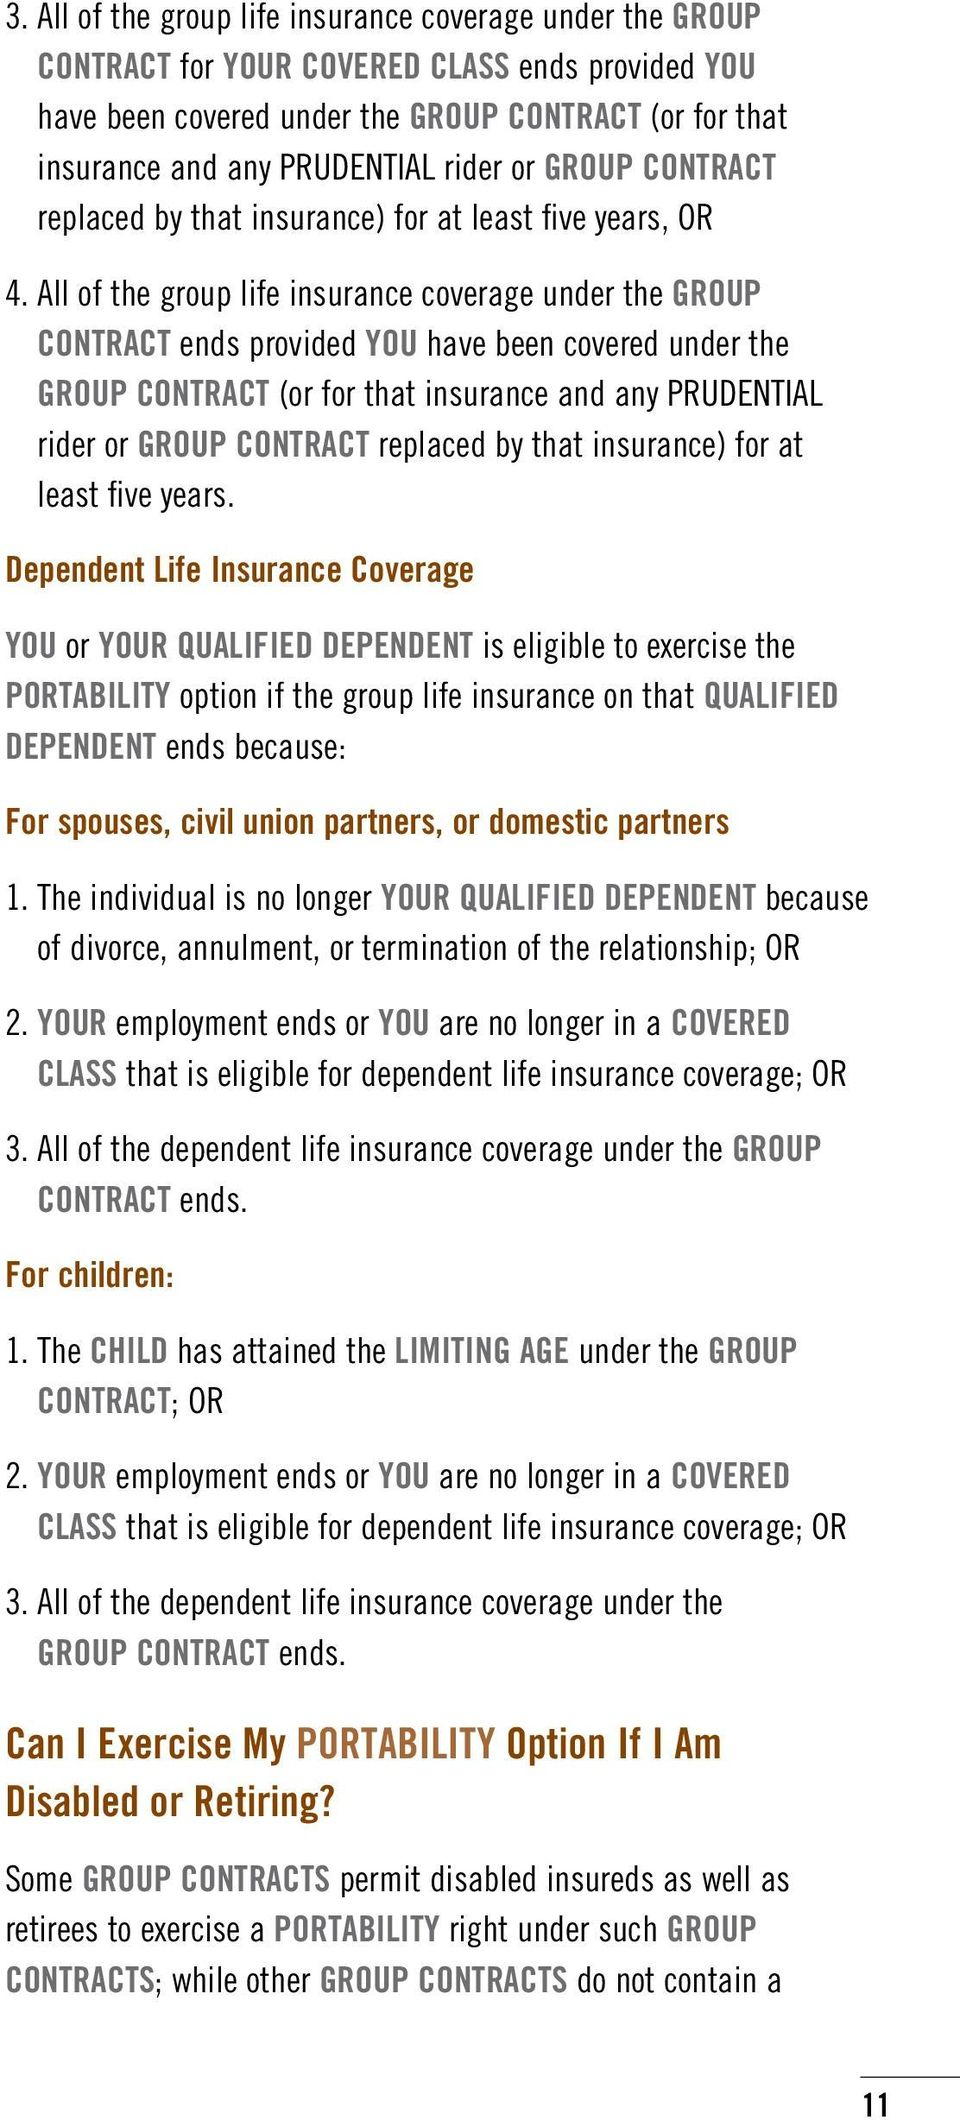 All of the group life insurance coverage under the GROUP CONTRACT ends provided YOU have been covered under the GROUP CONTRACT (or for that insurance and any PRUDENTIAL rider or GROUP CONTRACT